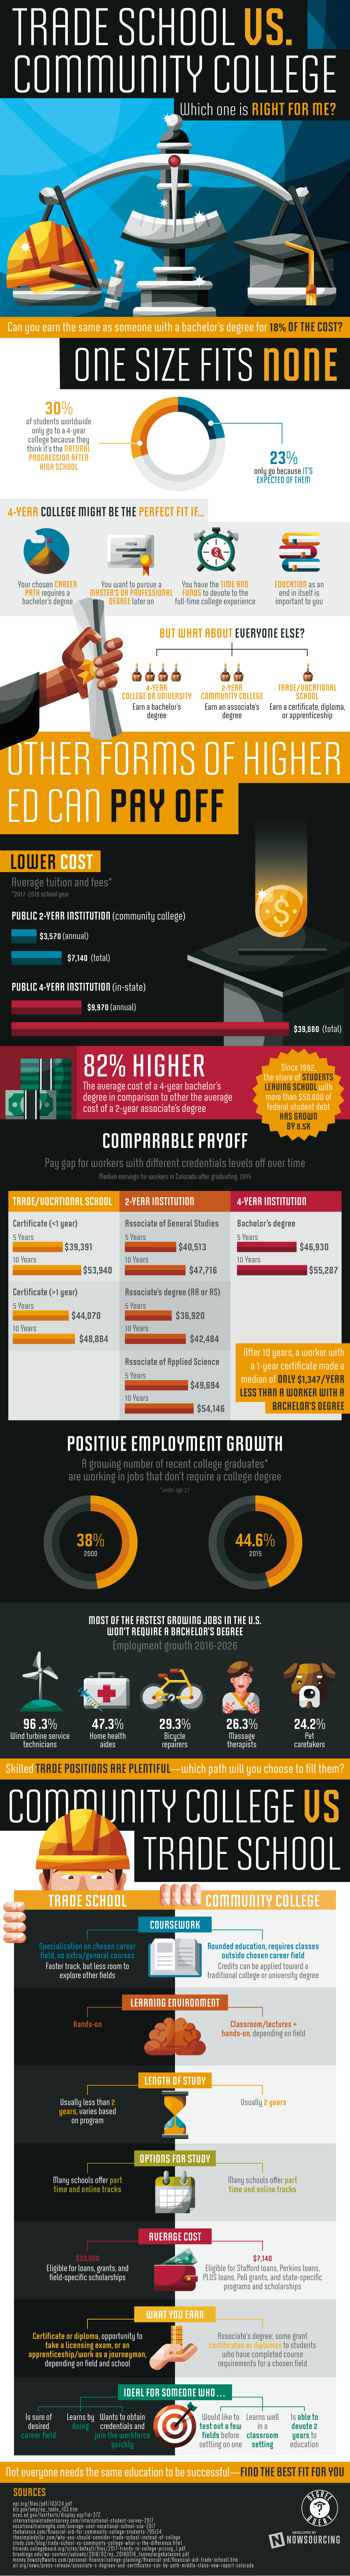 learn more about trade school and community college with the infographic below provided by degree query